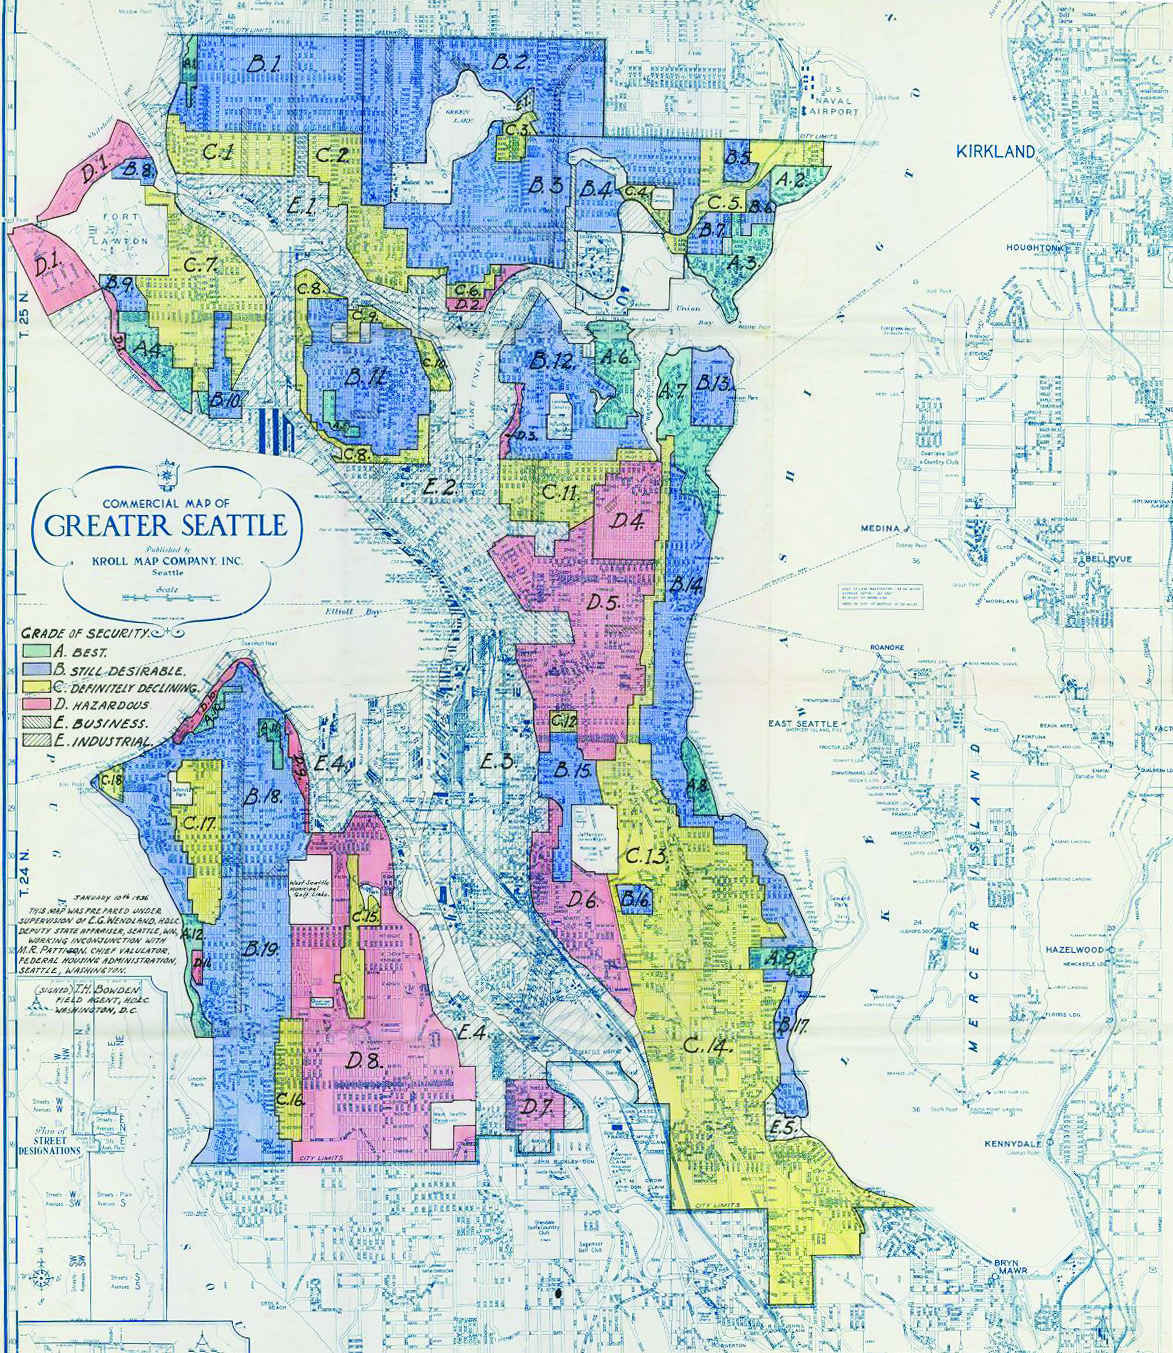 Redlining map of Seattle